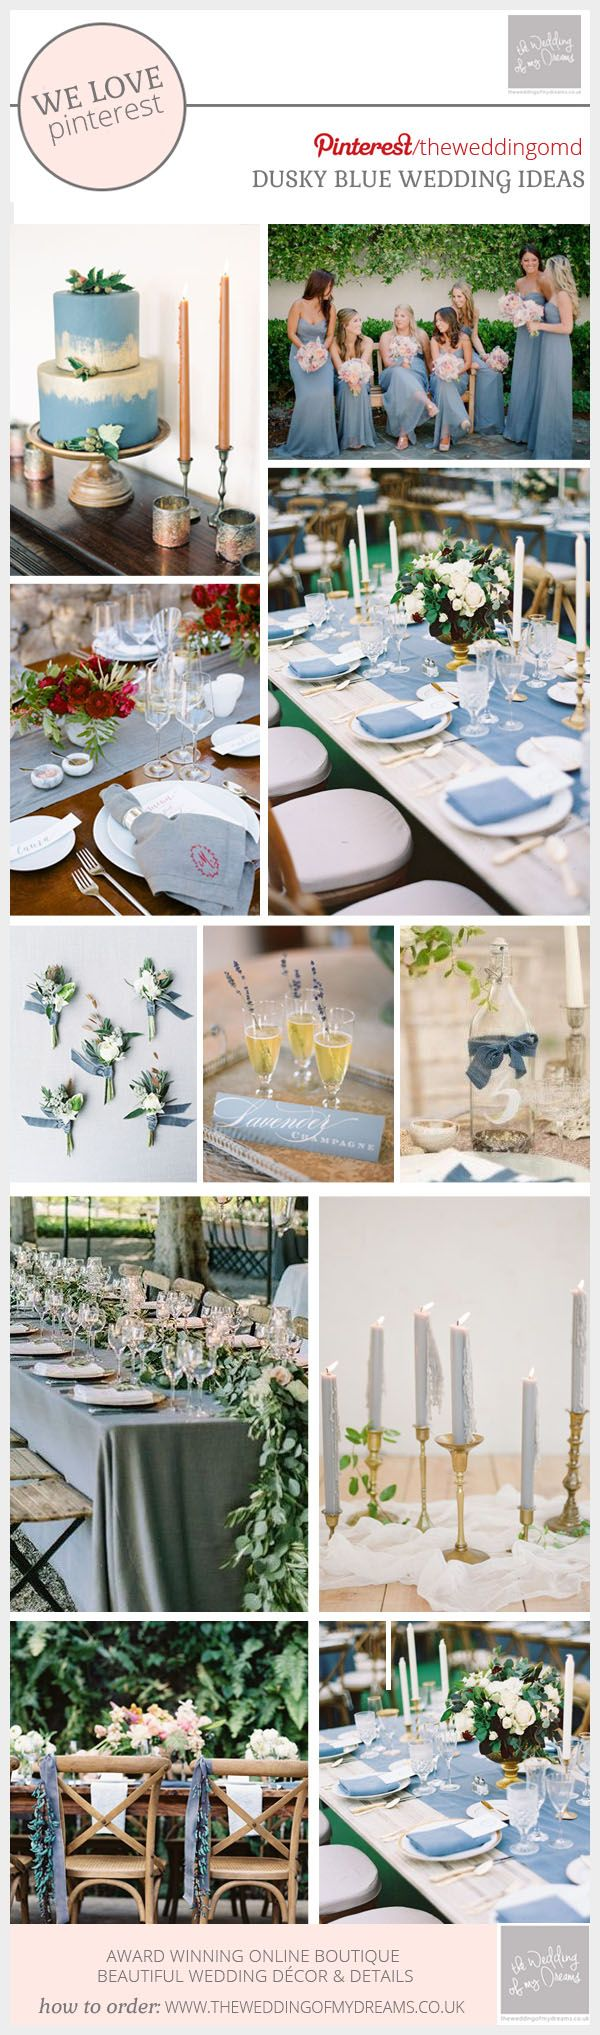 We are seeing more and more couples adding a hint of dusky blue to their wedding color palette and we love it. The soft dusky blue tone can be mixed with other shades of blue for an all blue wedding color scheme, or perhaps mix it with other colors